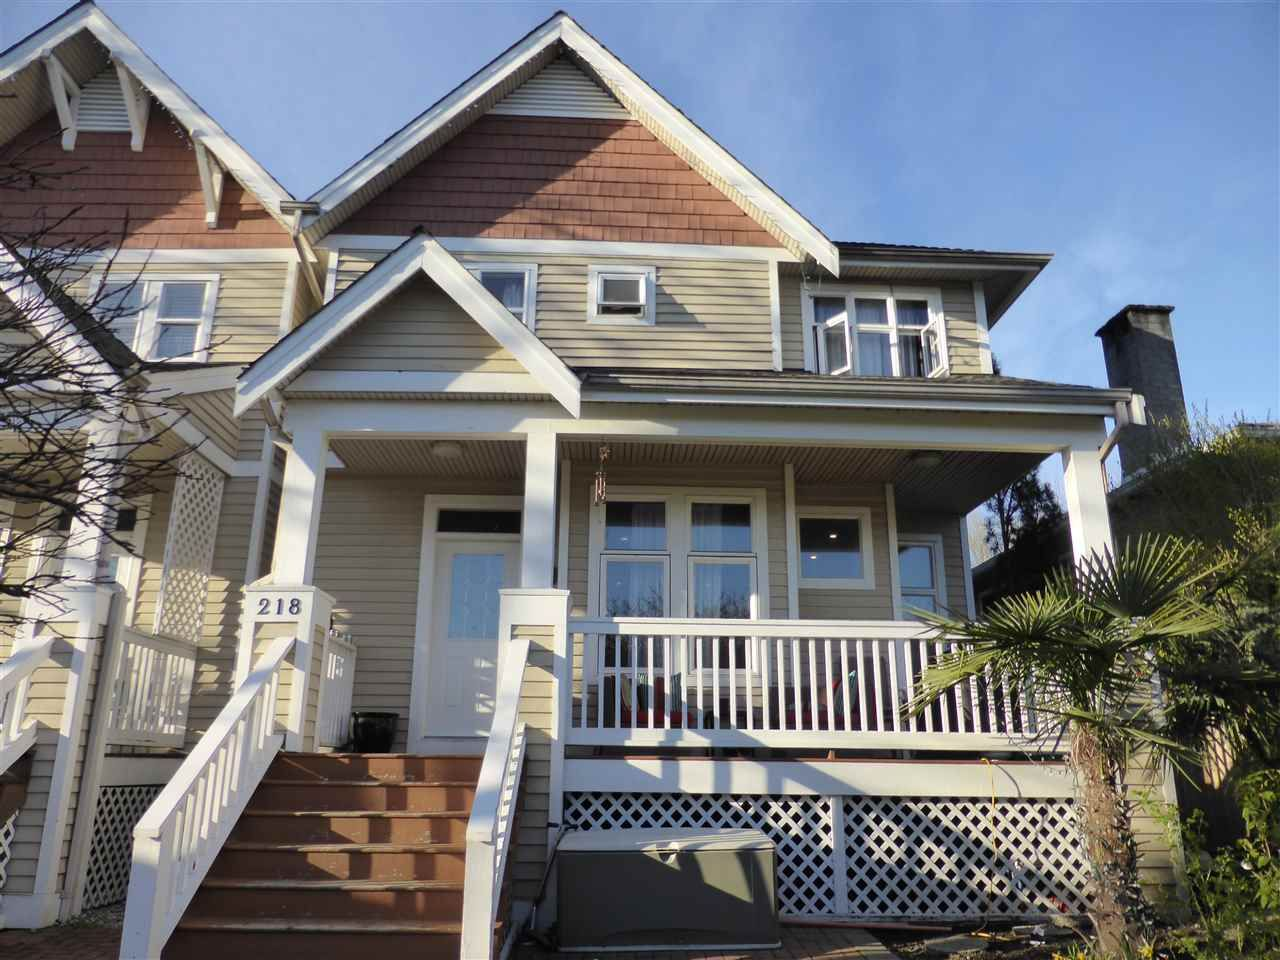 Main Photo: 218 E 10TH STREET in North Vancouver: Central Lonsdale Townhouse for sale : MLS®# R2045615